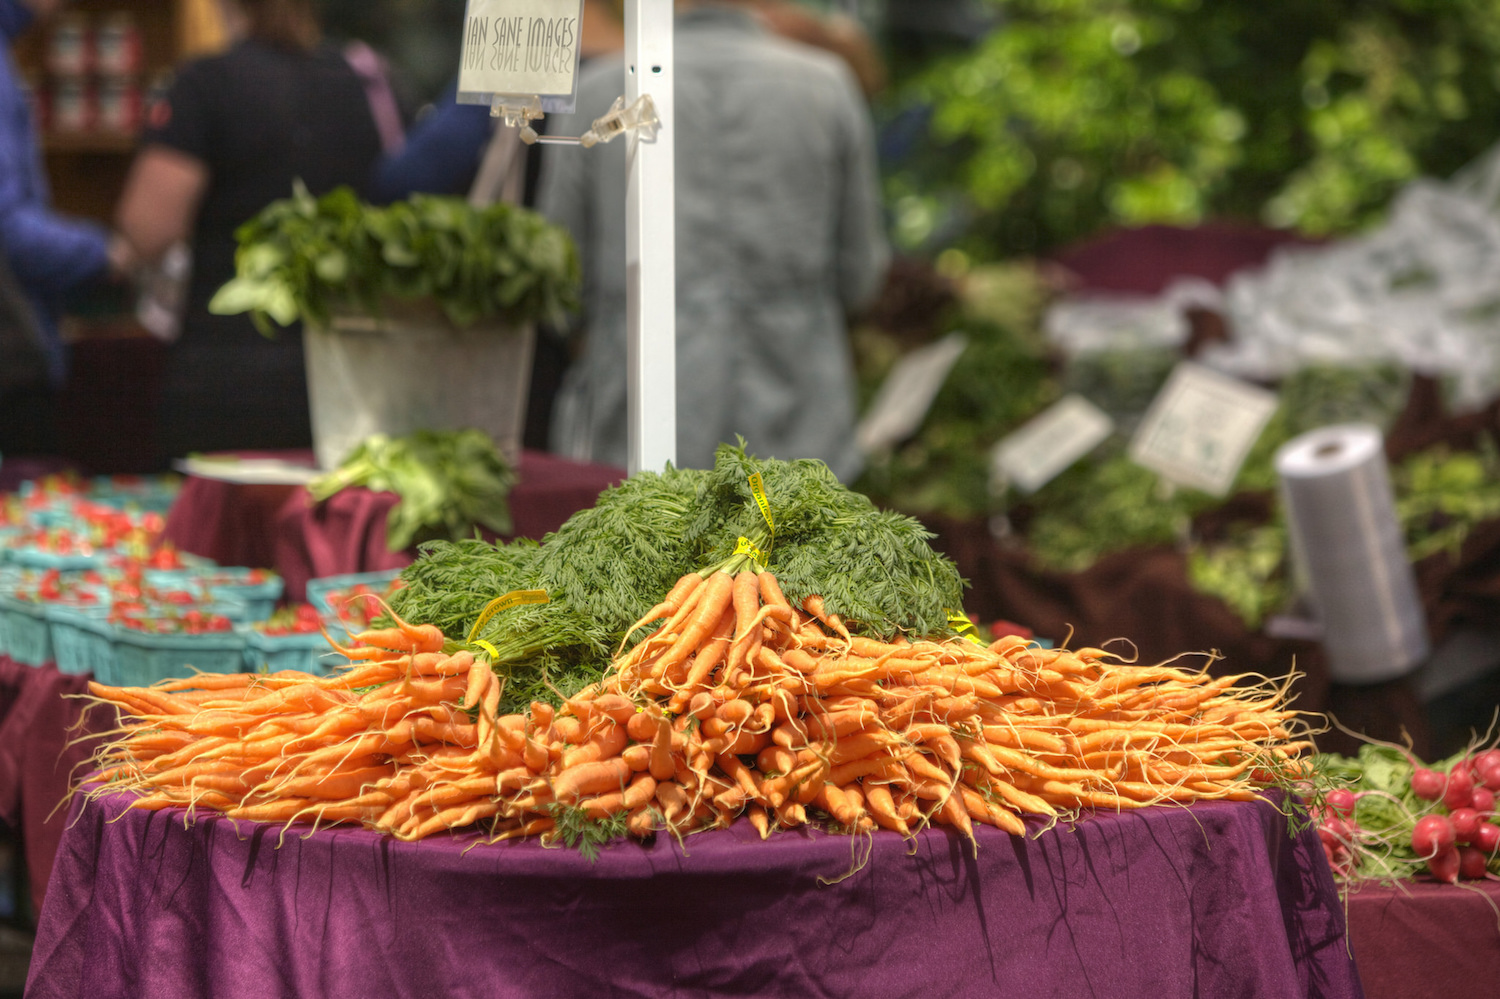 Carrots at Portland Farmer's Market |© Ian Sane/Flickr